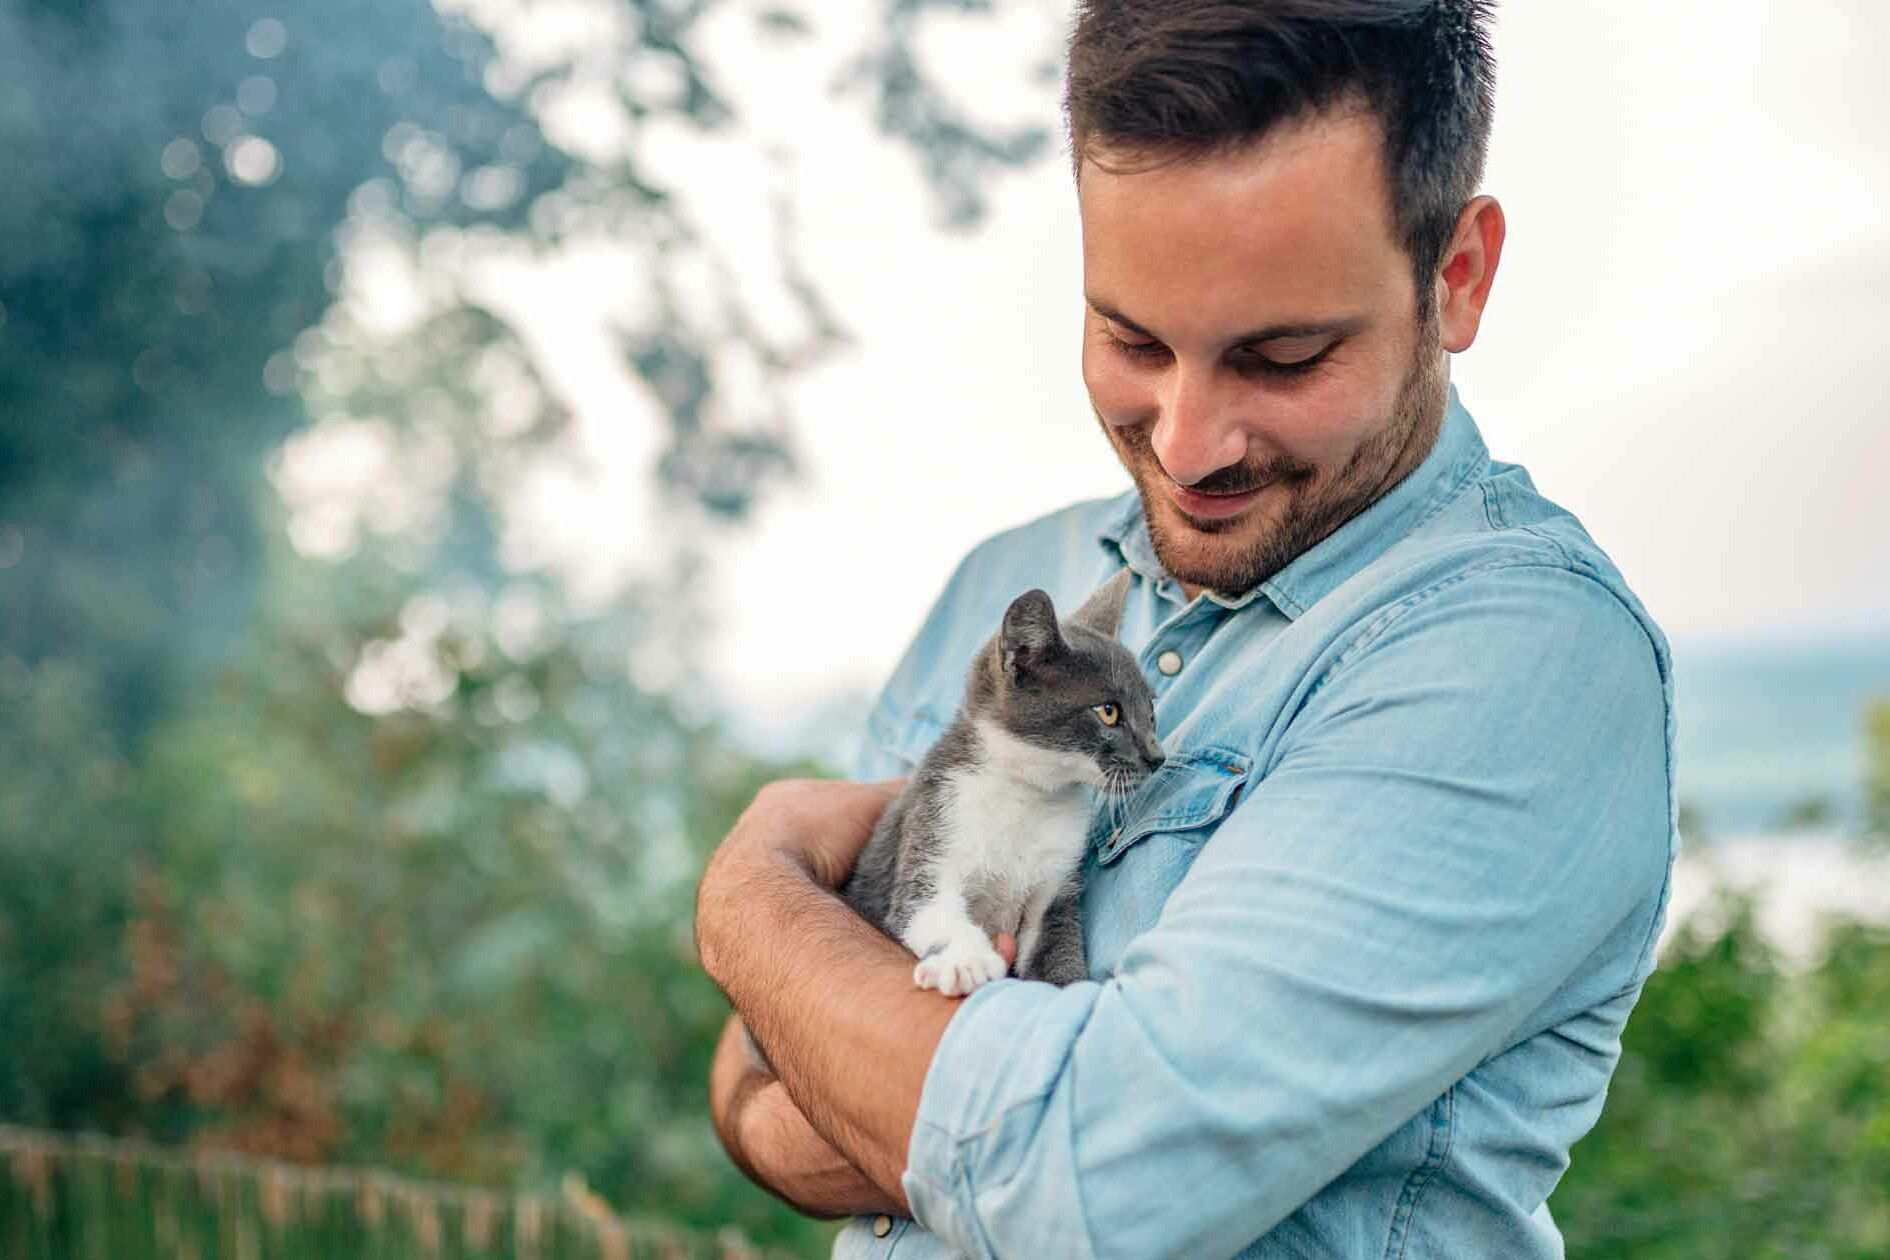 Man Holds Kitten after Feeling Lonely